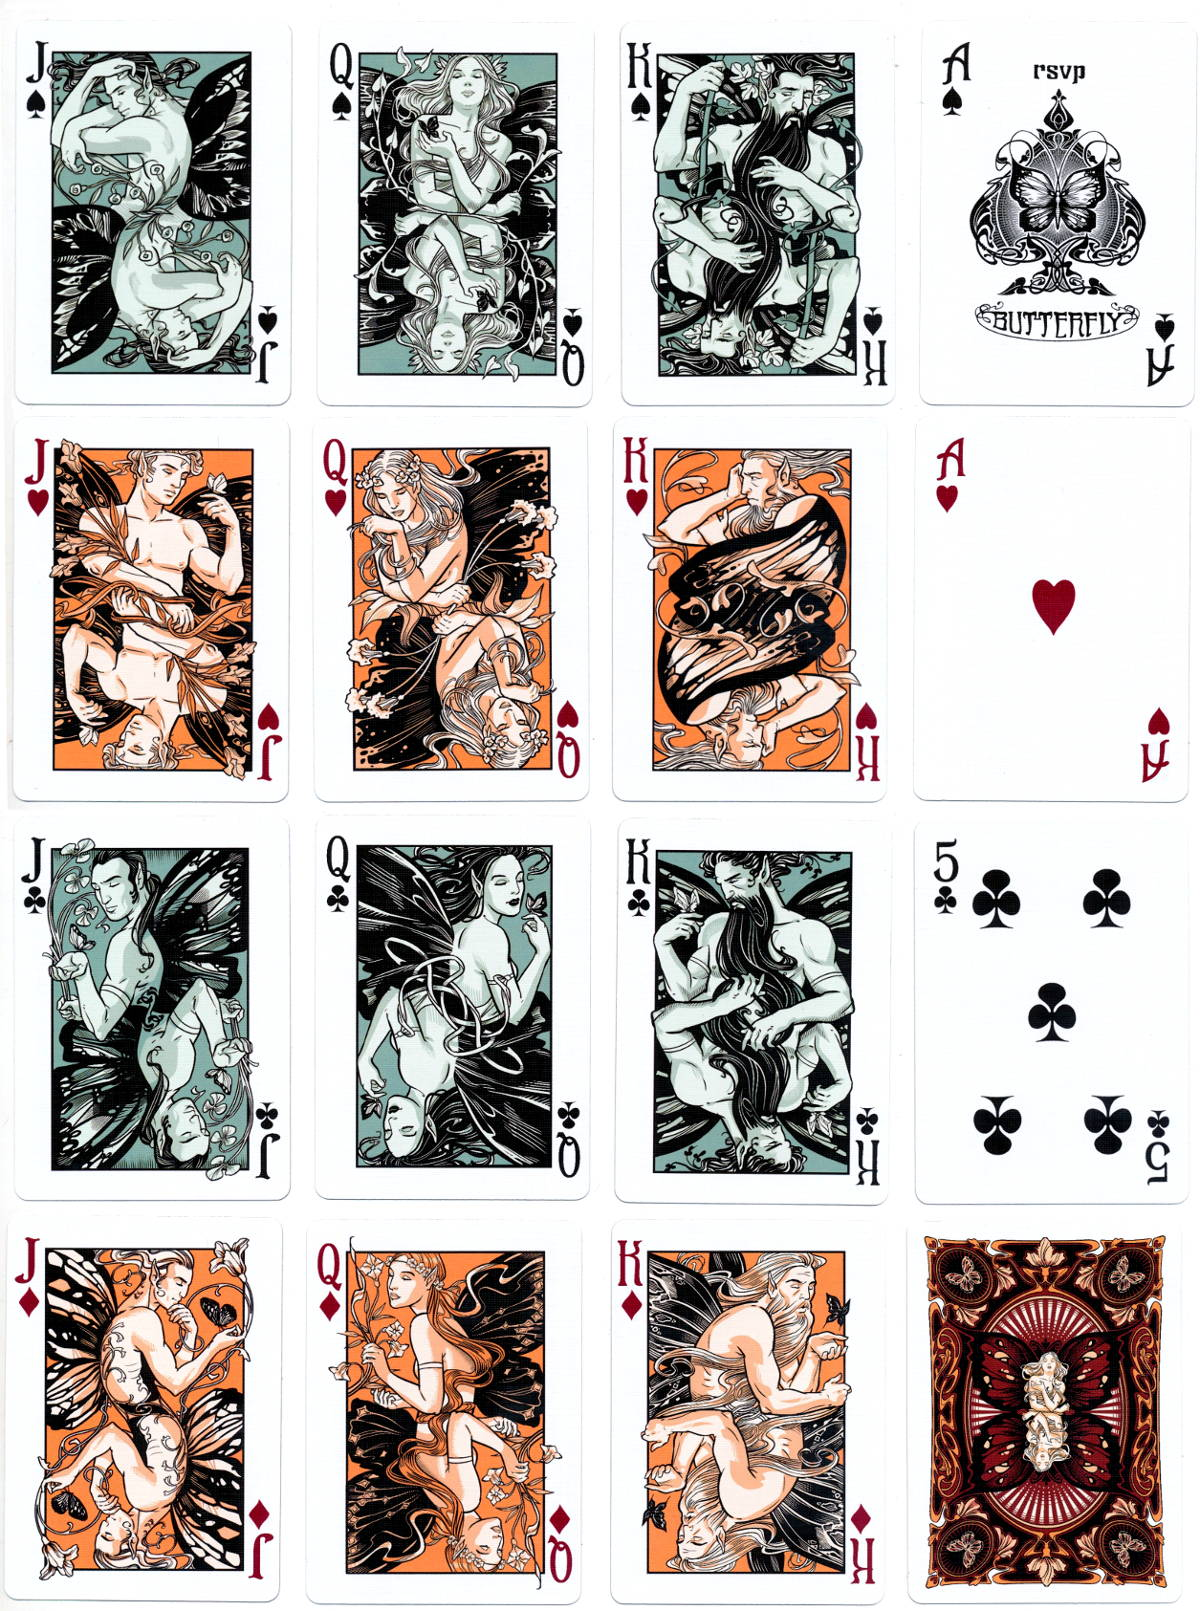 Bicycle 'Butterfly' playing cards printed by USPCC, 2012